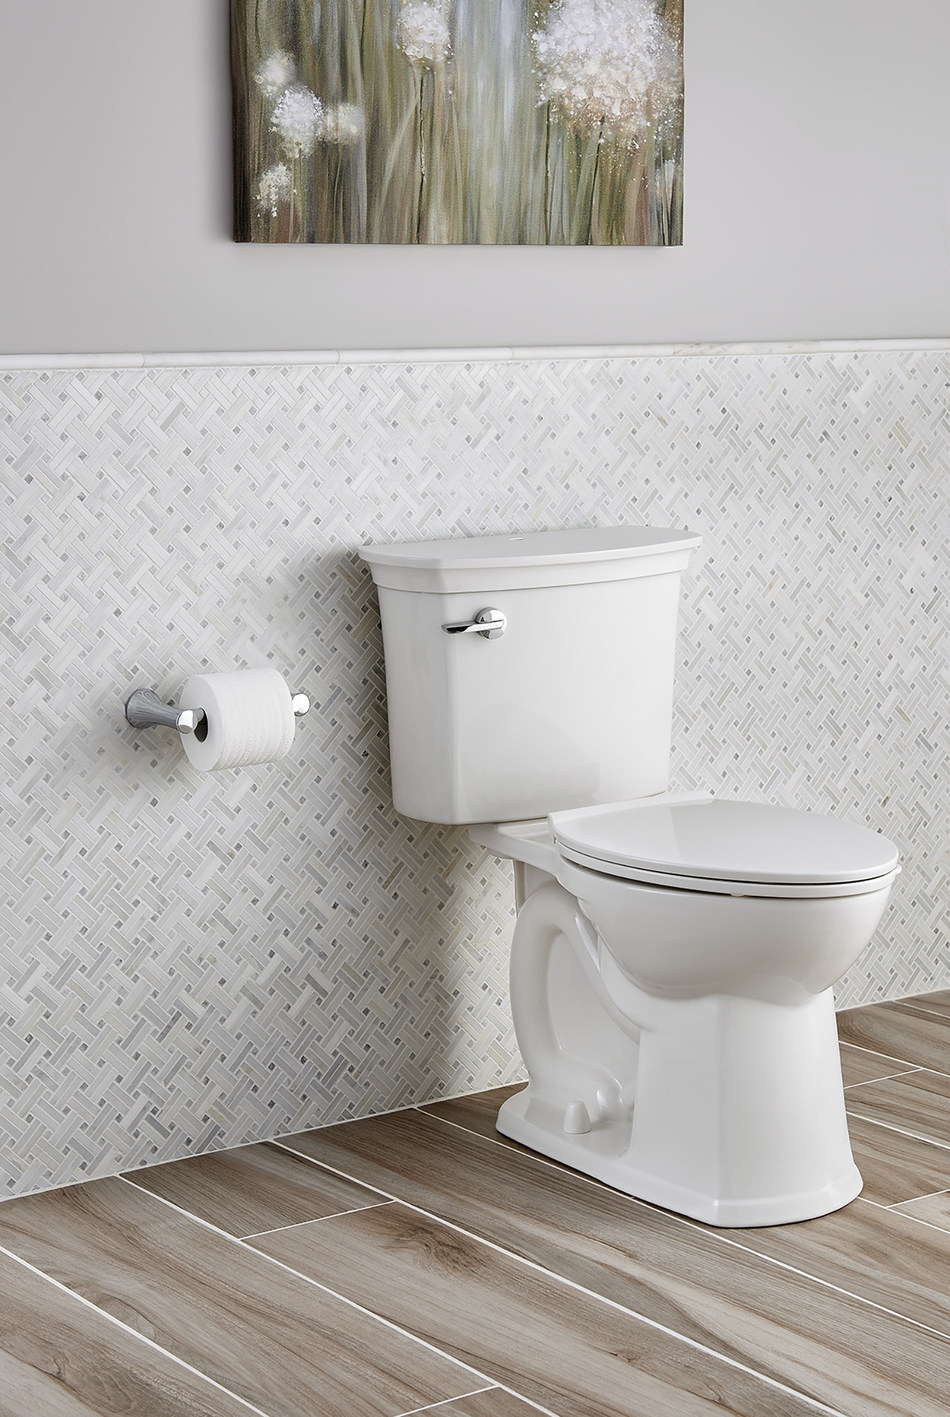 The ActiClean self-cleaning toilet has been recognized with a prestigious Gold A' Design Award.